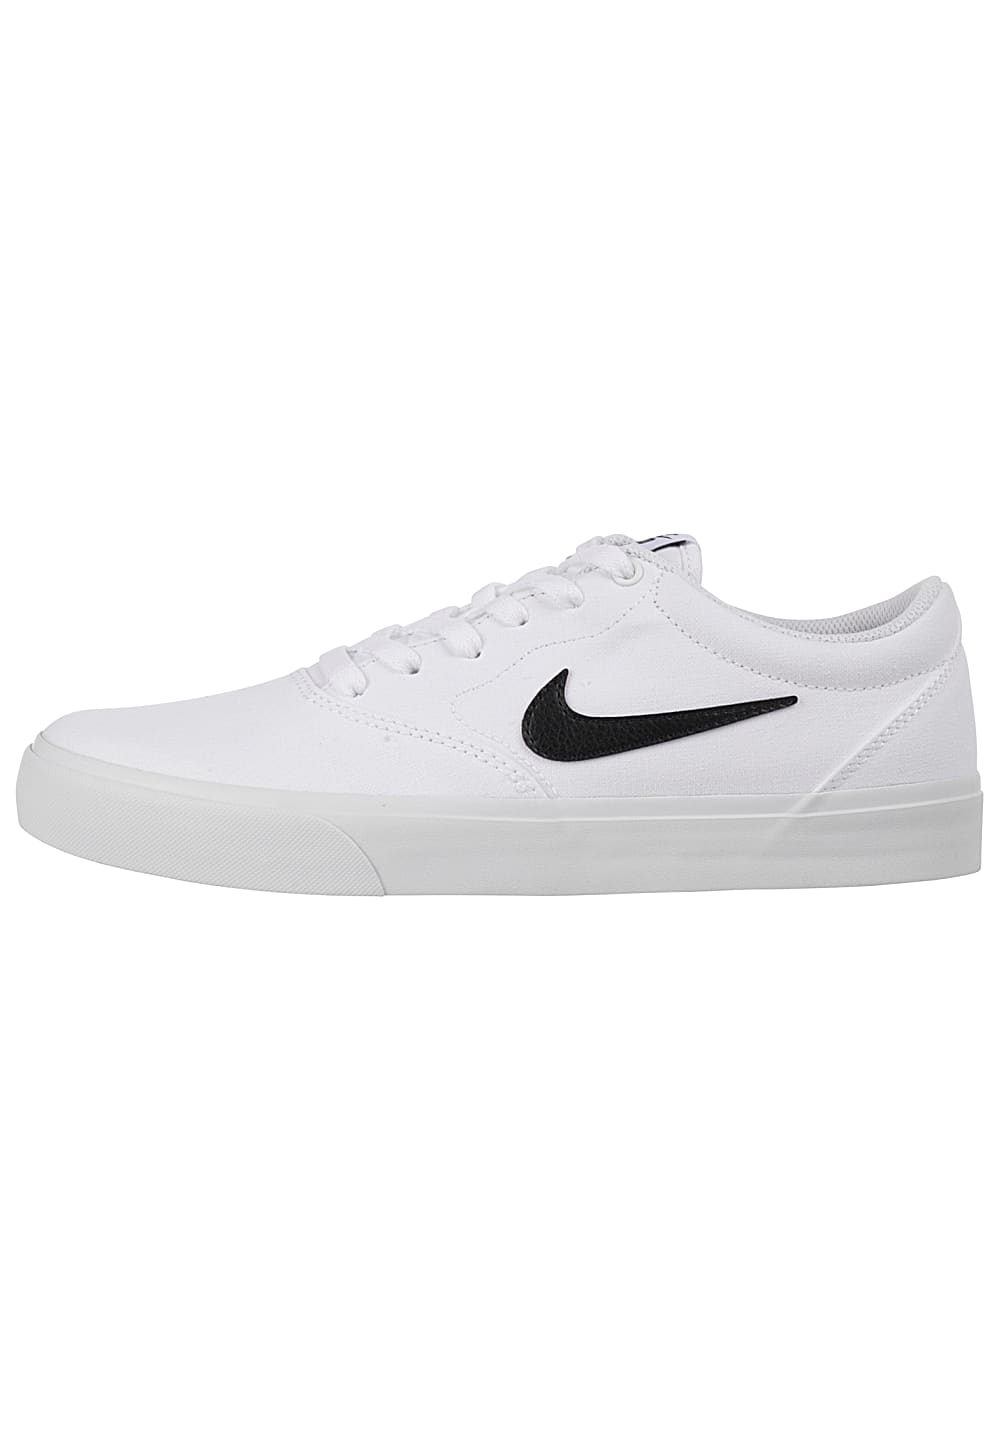 top brands speical offer sports shoes NIKE SB Charge Canvas - Sneakers for Men - White - Planet Sports